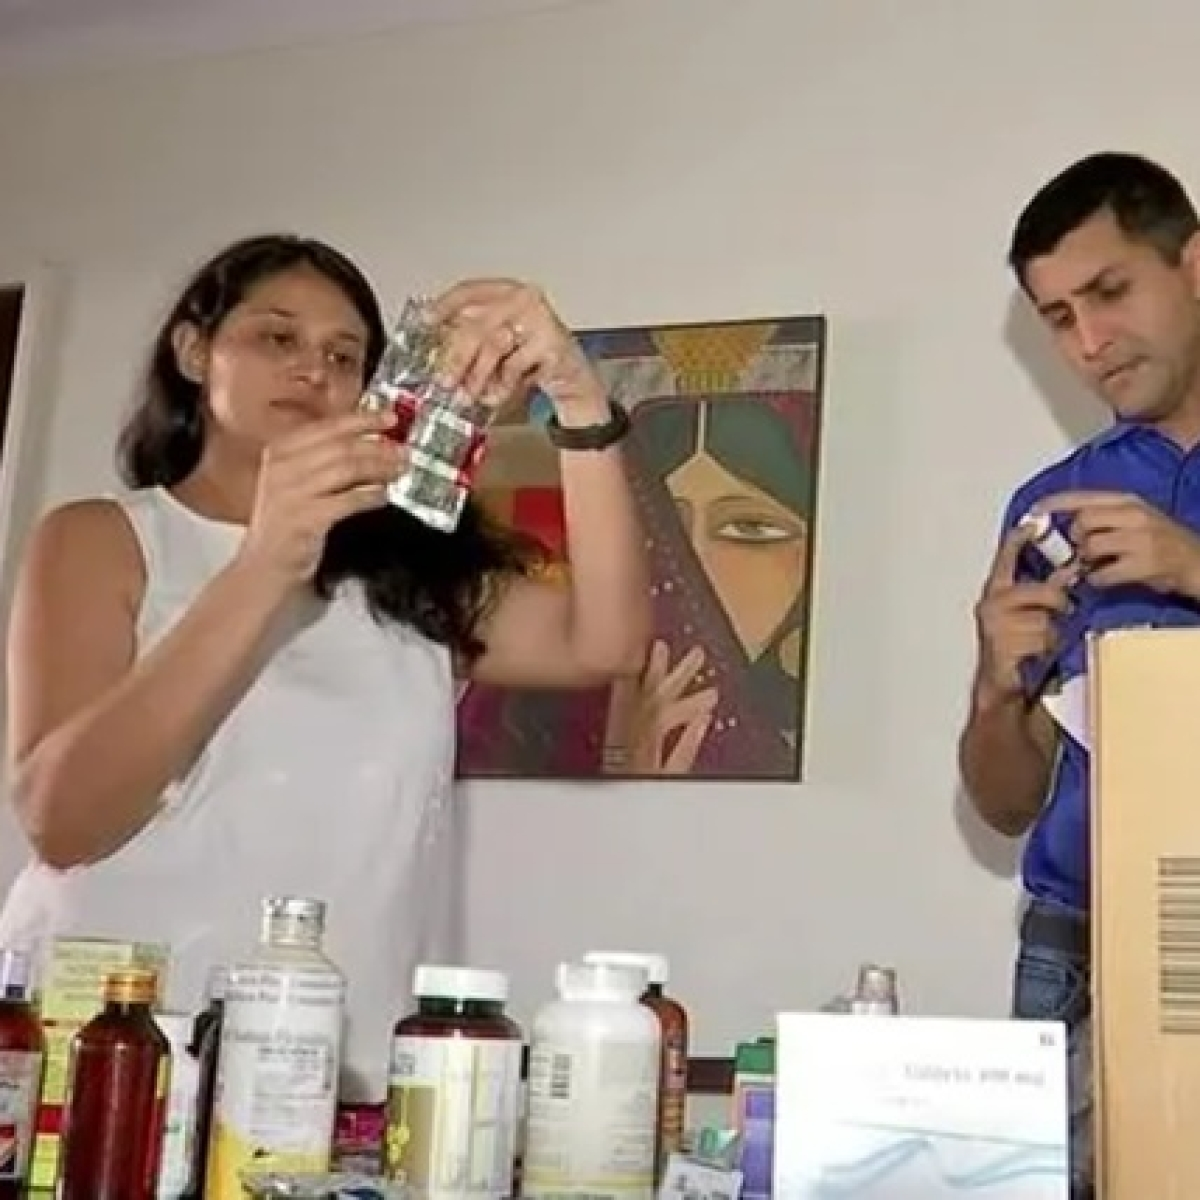 Mumbai: Doctor couple collects unused COVID-19 meds to help needy patients